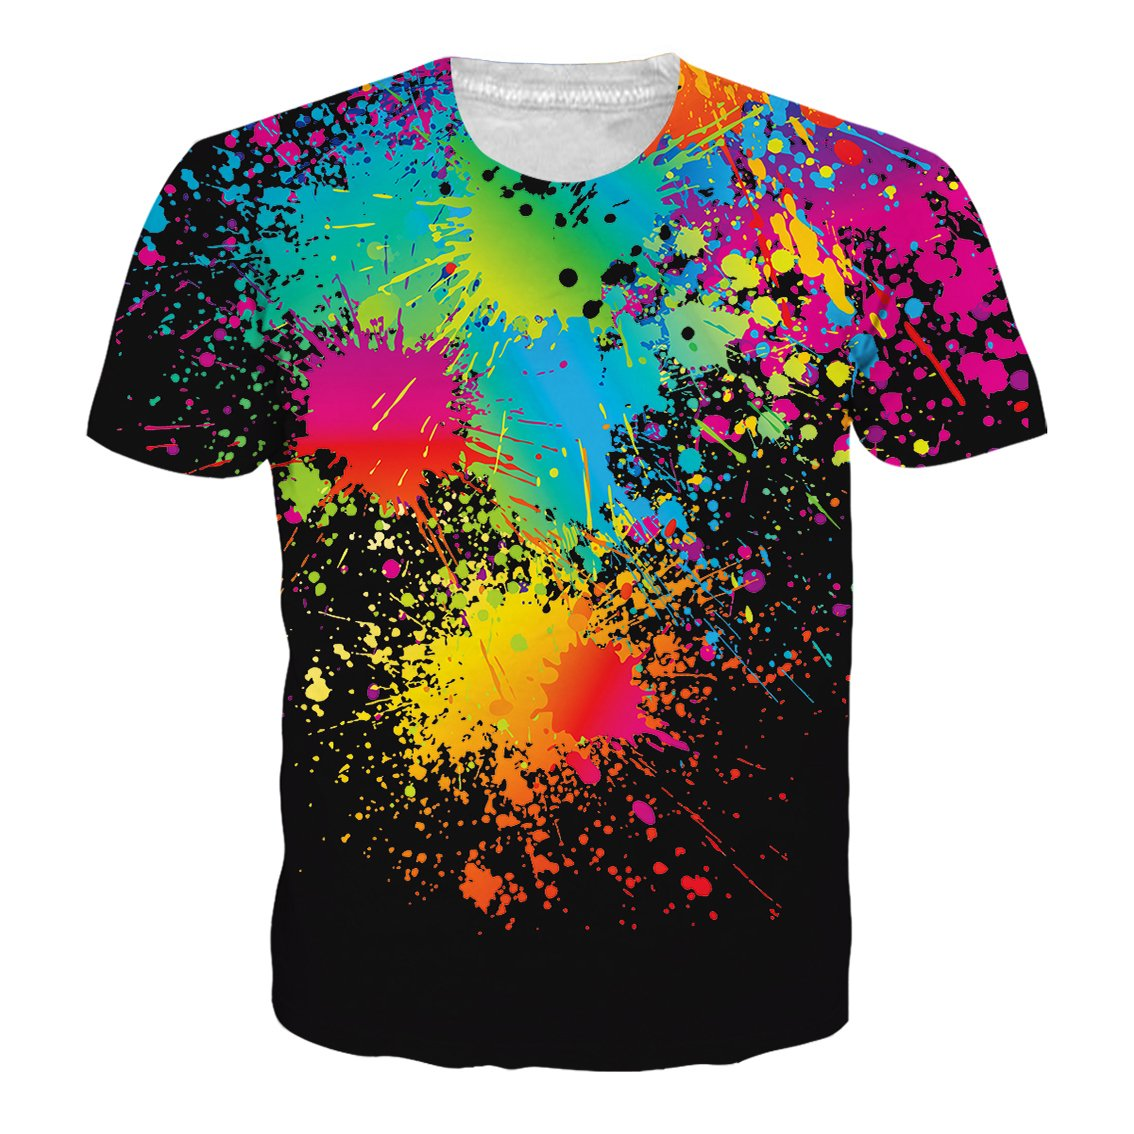 NEWISTAR Unisex 3D Stampato Estate Casuale Manica Corta T Shirt Tees